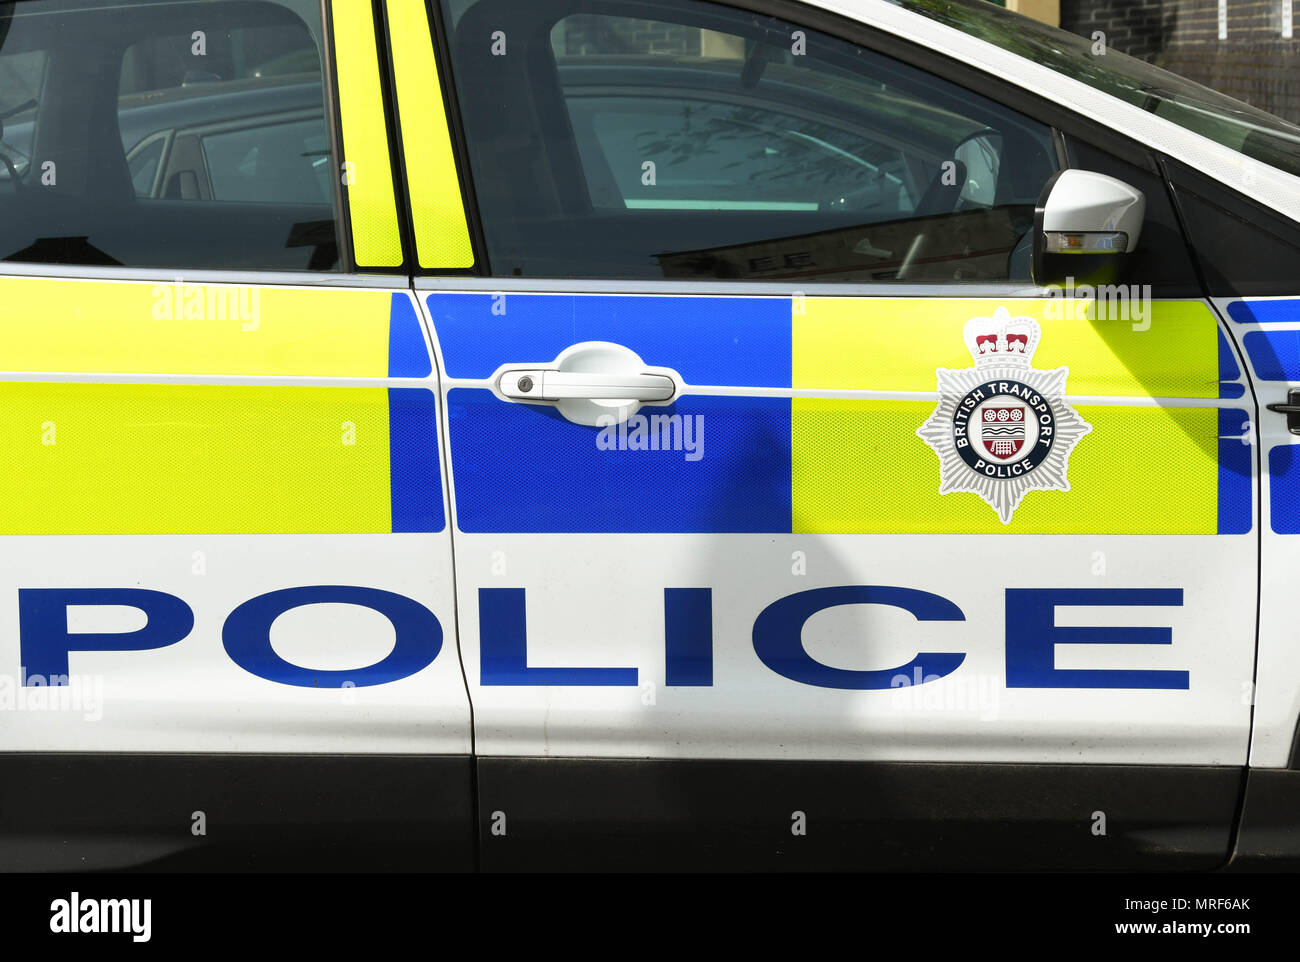 British Transport Police emblem on the side of a patrol car Stock Photo